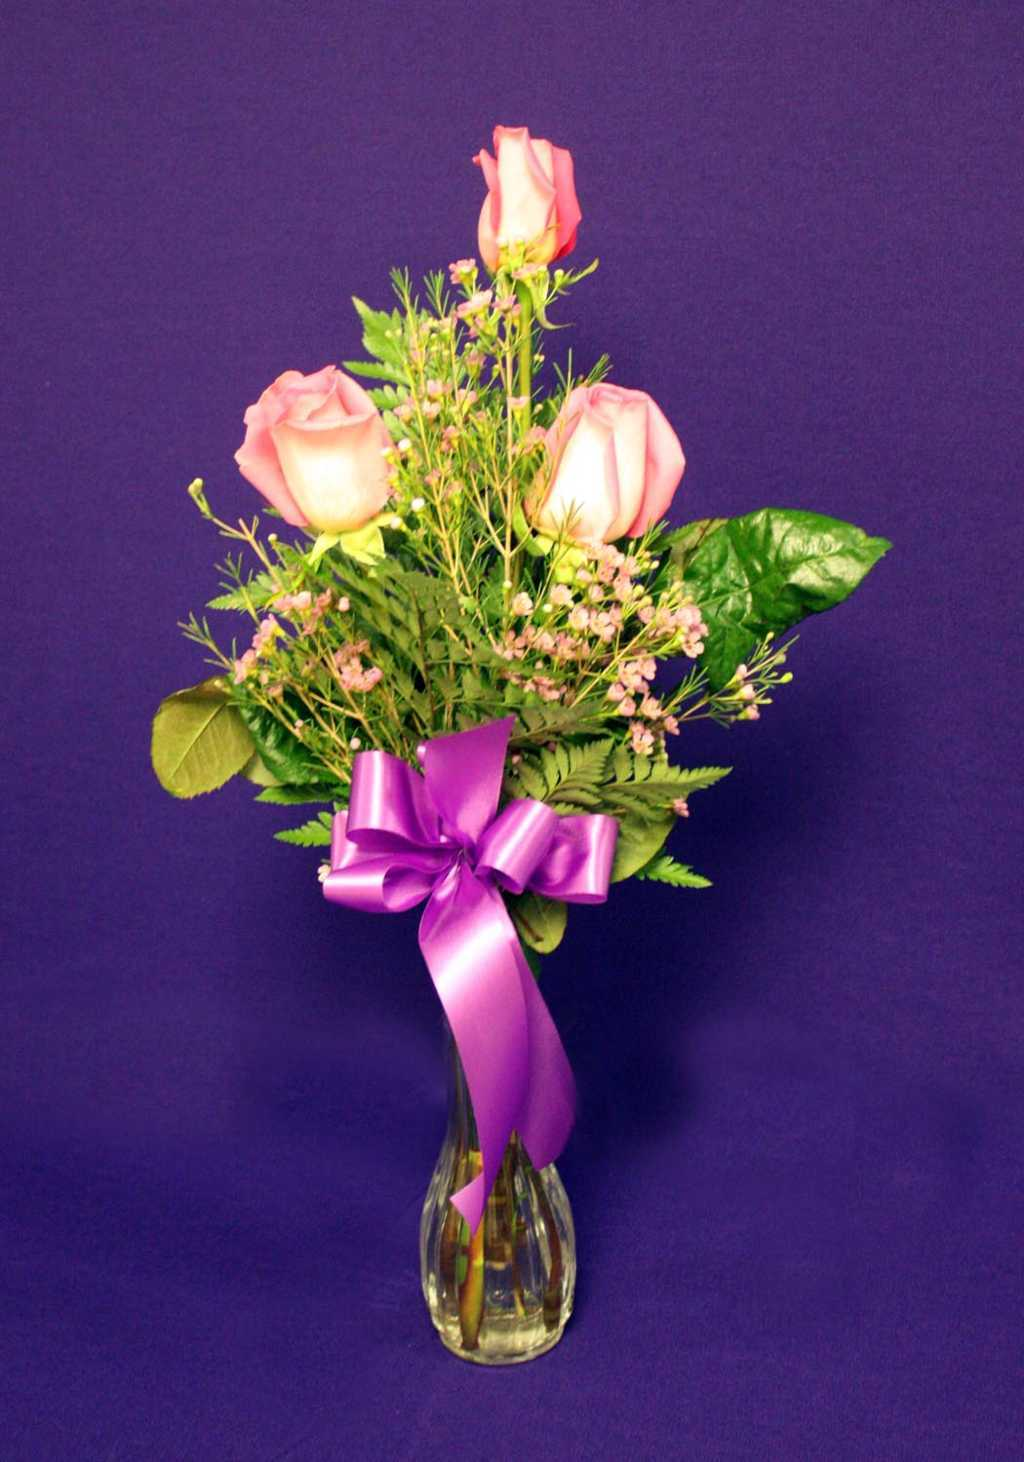 Pink Roses with purple ribbon floral arrangement from Mon General Hospital Gift Shop